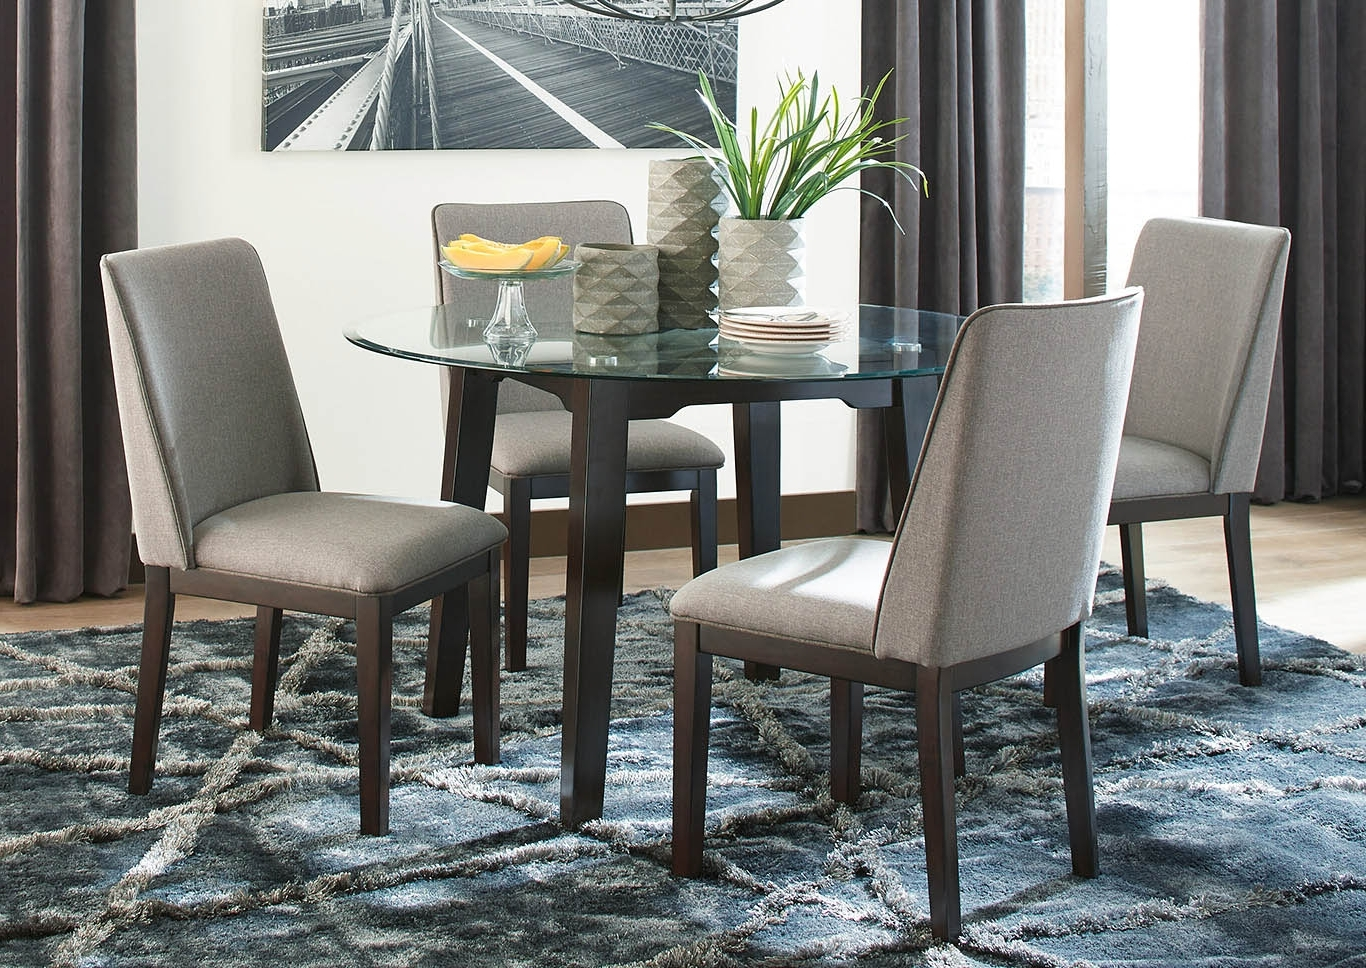 Southside Furniture Chanceen 5 Piece Dining Room Set For Latest Craftsman 5 Piece Round Dining Sets With Side Chairs (View 9 of 25)